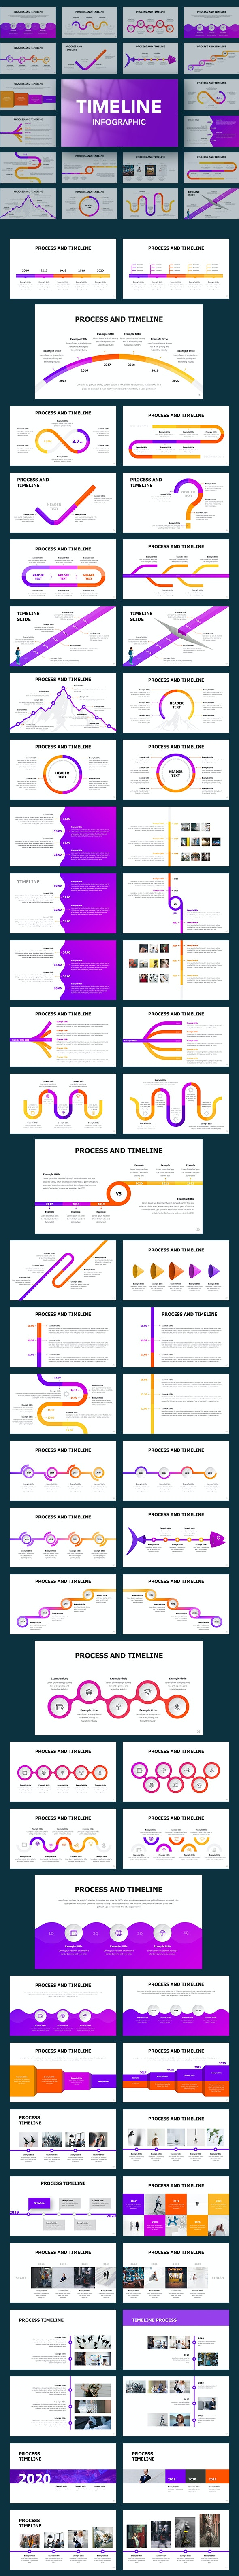 Timeline Infographic - Pitch Deck PowerPoint Templates